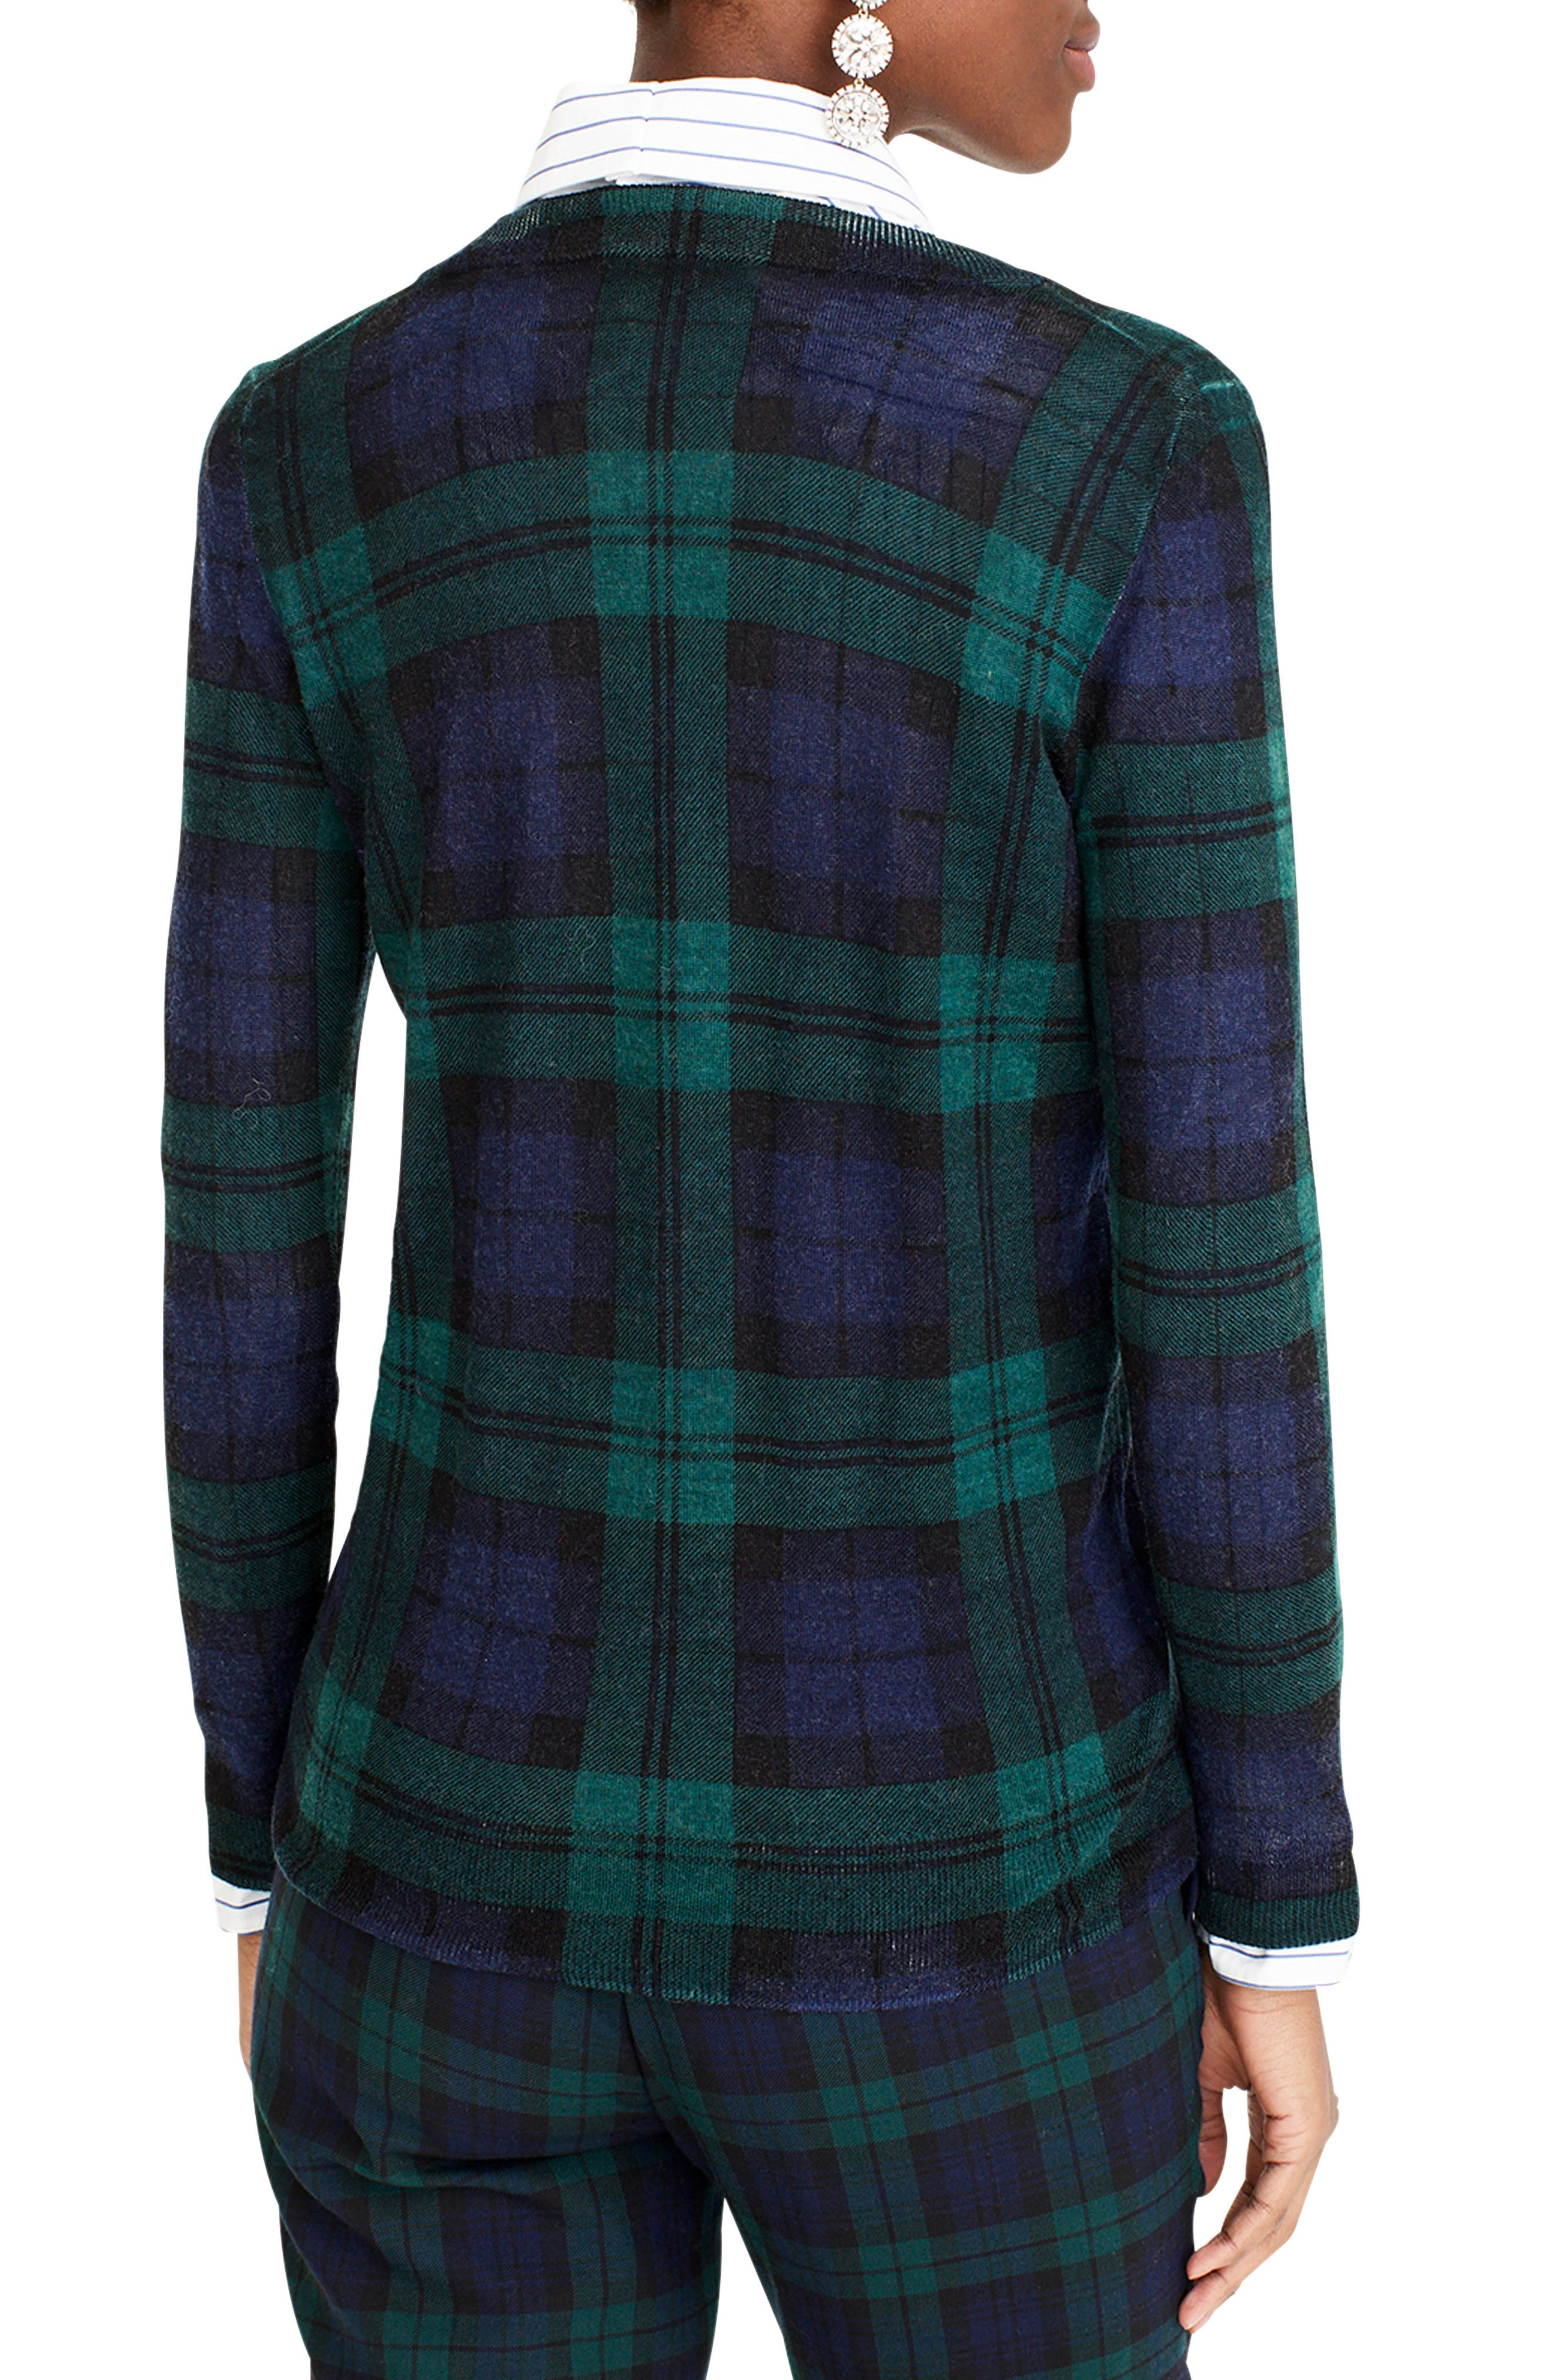 J.CREW,                             Blackwatch Plaid Tippi Sweater,                             Alternate thumbnail 2, color,                             009